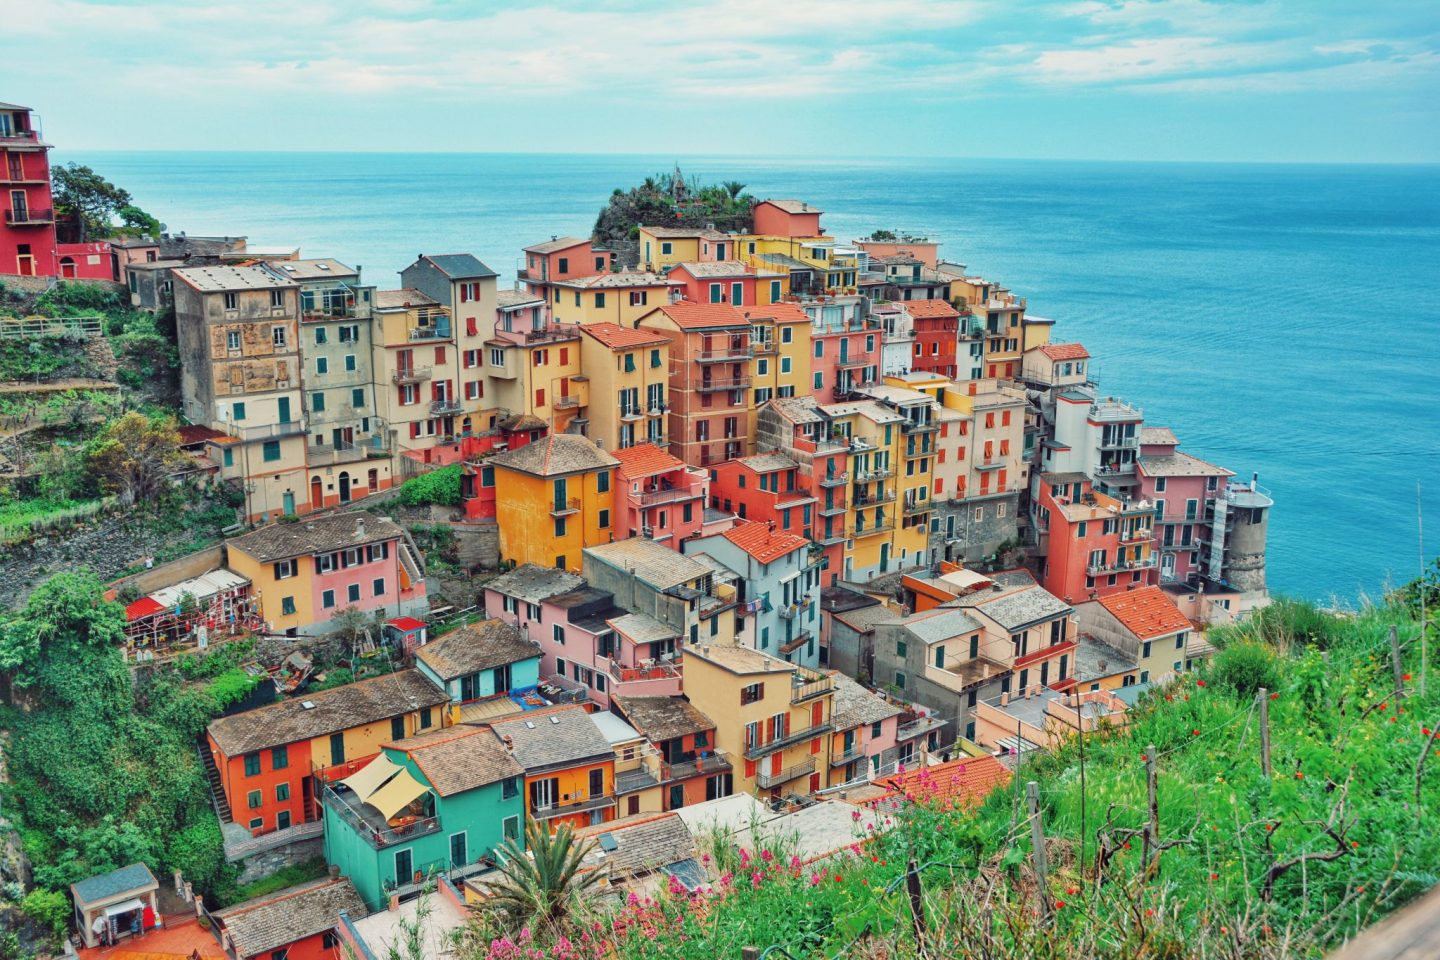 Cinque Terre, Italy is one of the world's most colourful cities